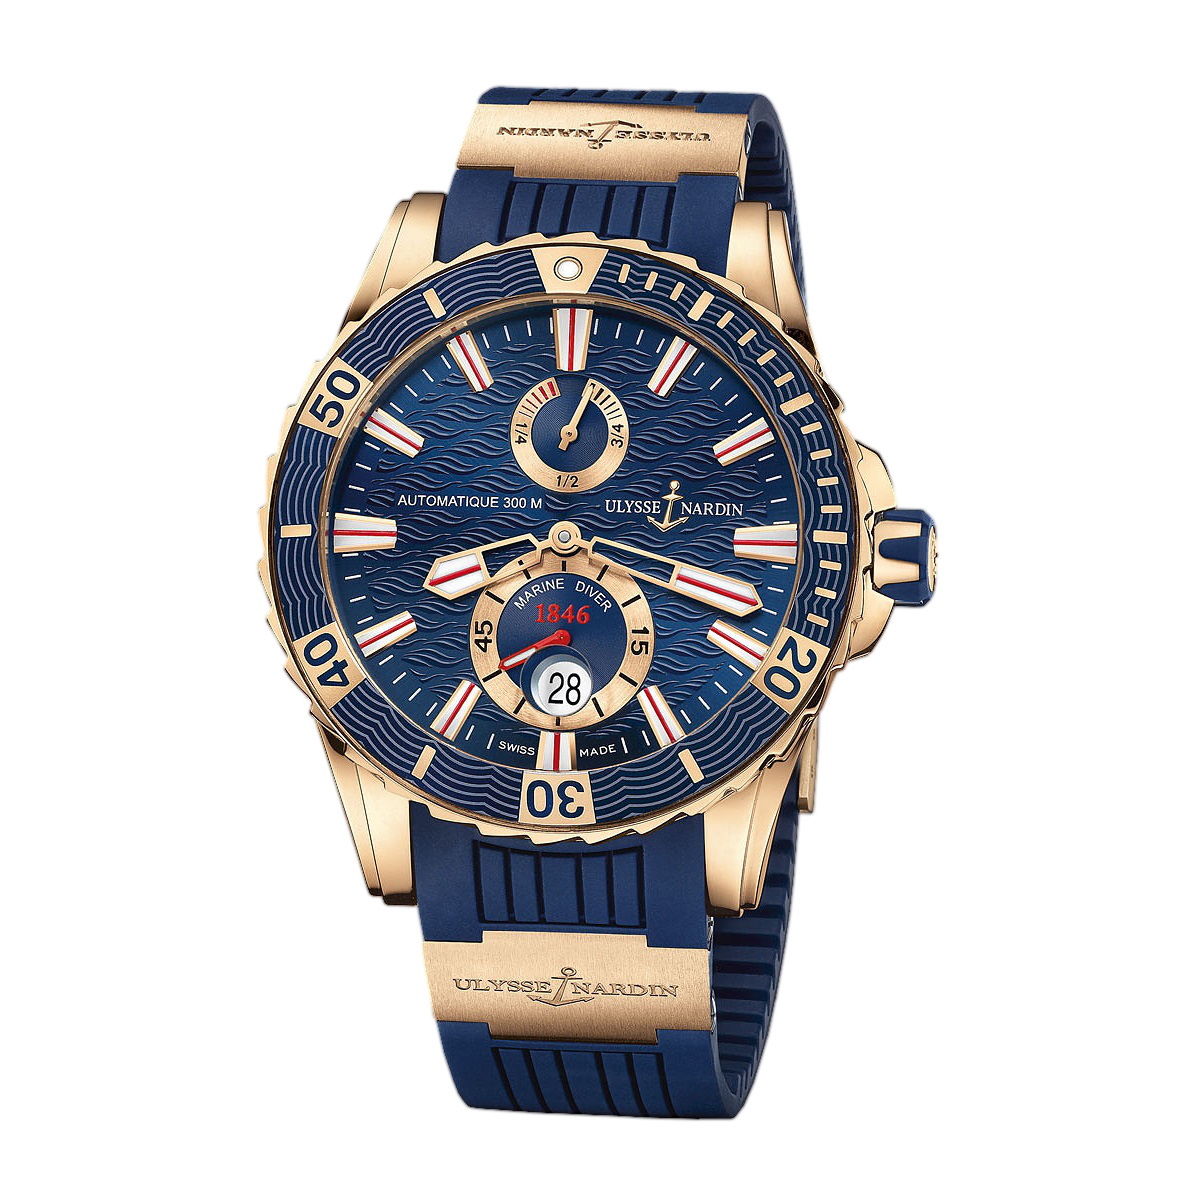 Marine Diver Chronometer 2014 44mm  266-10-3/93